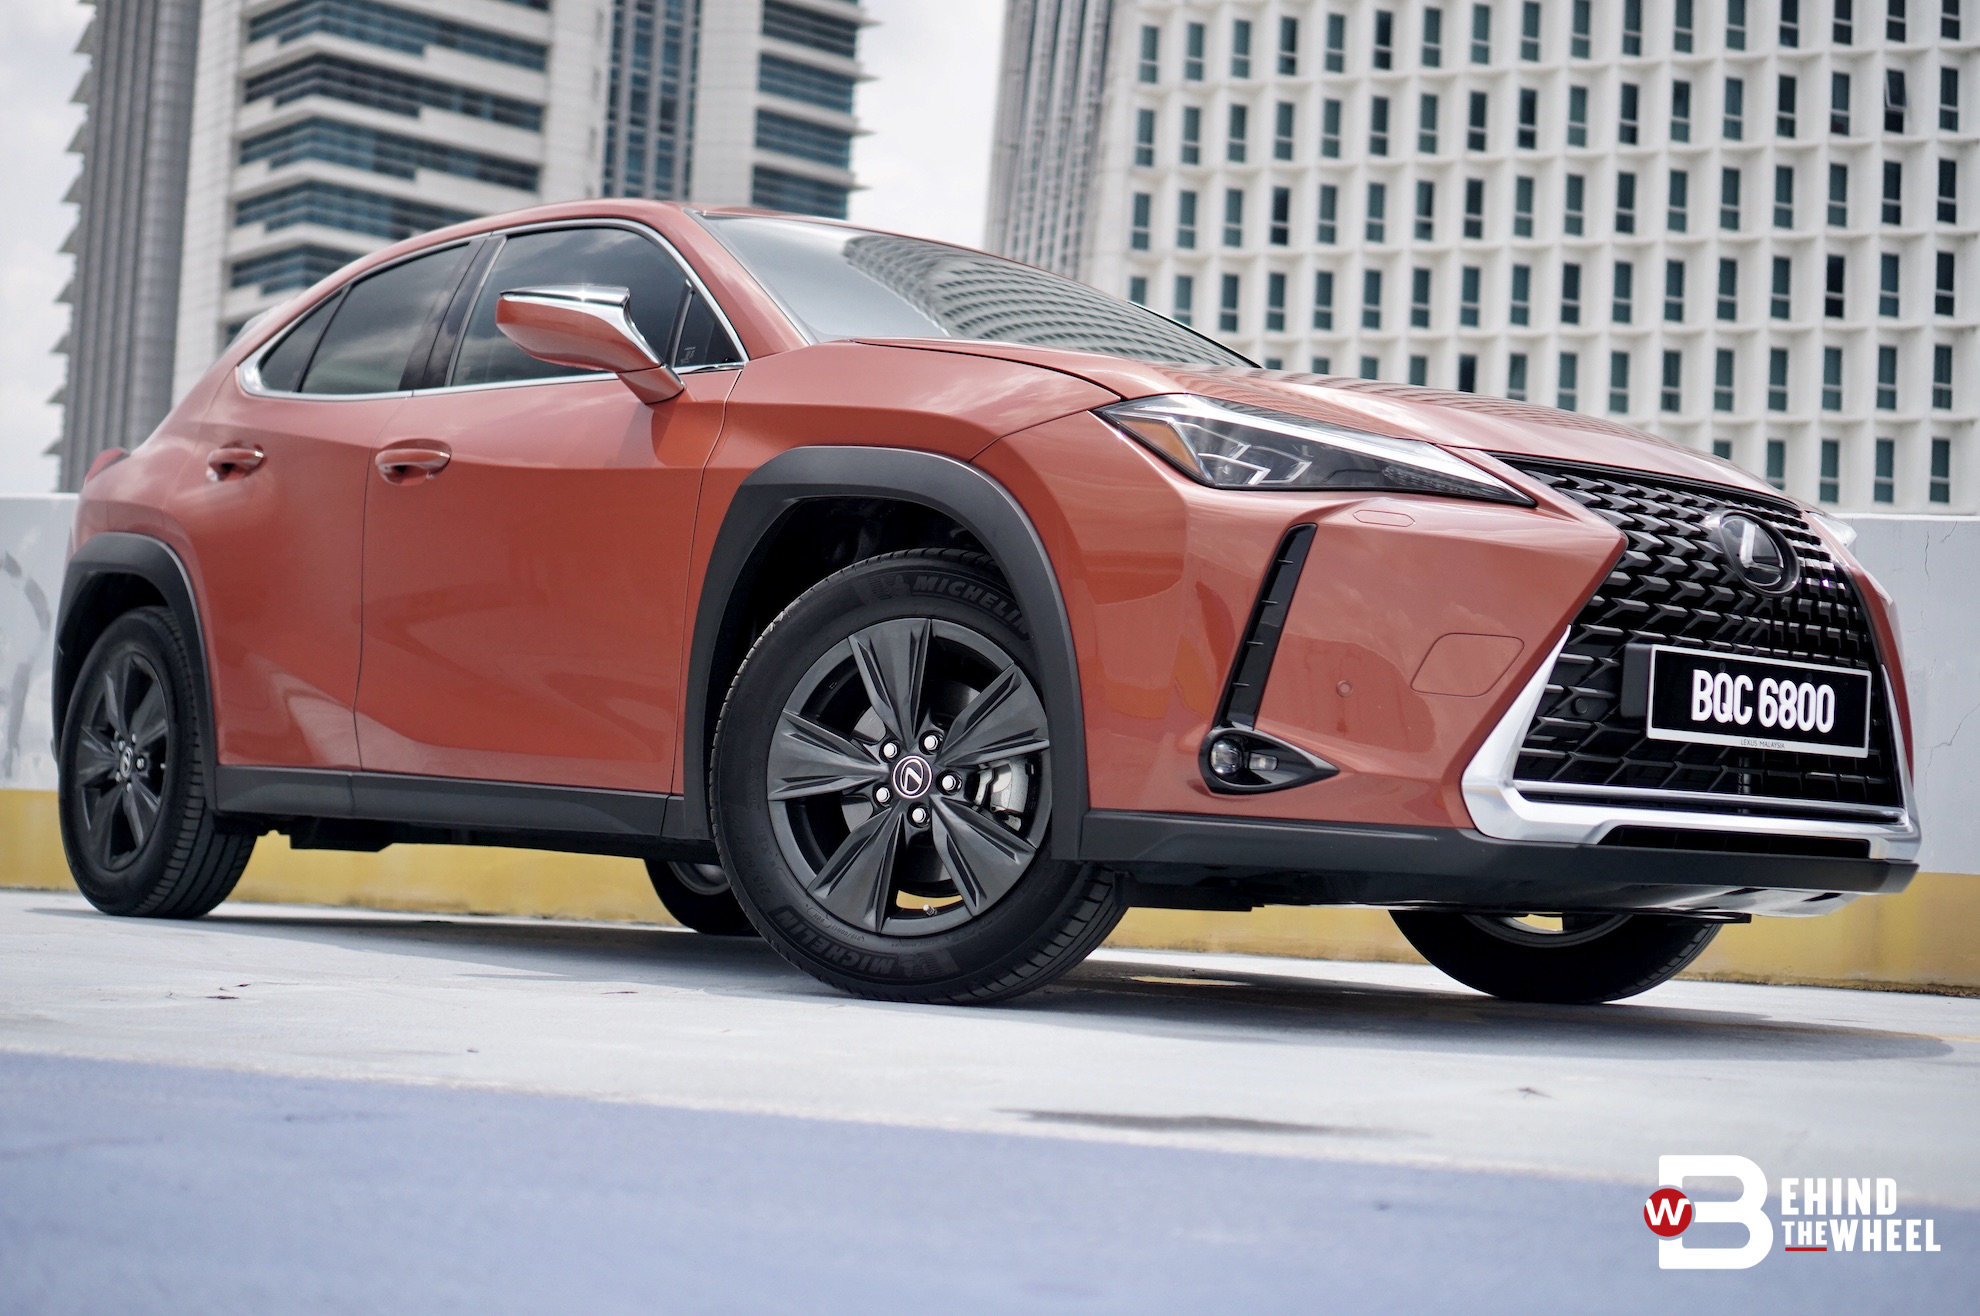 Entry-level Lexus UX Urban Has Nothing Entry-level About It